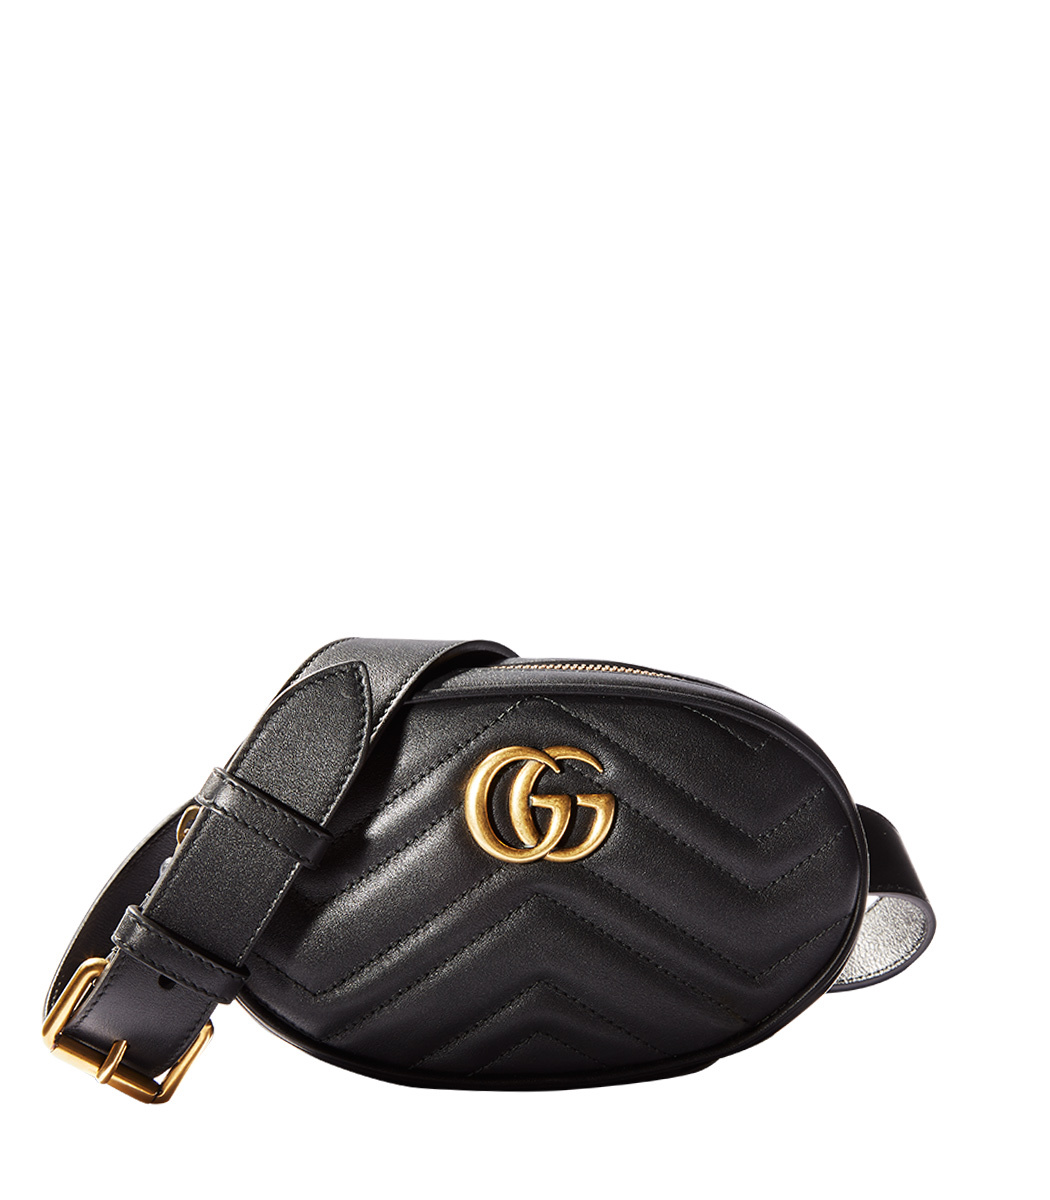 0358caed3477 Gucci Gg Marmont 2.0 Leather Belt Pack, Black | ModeSens